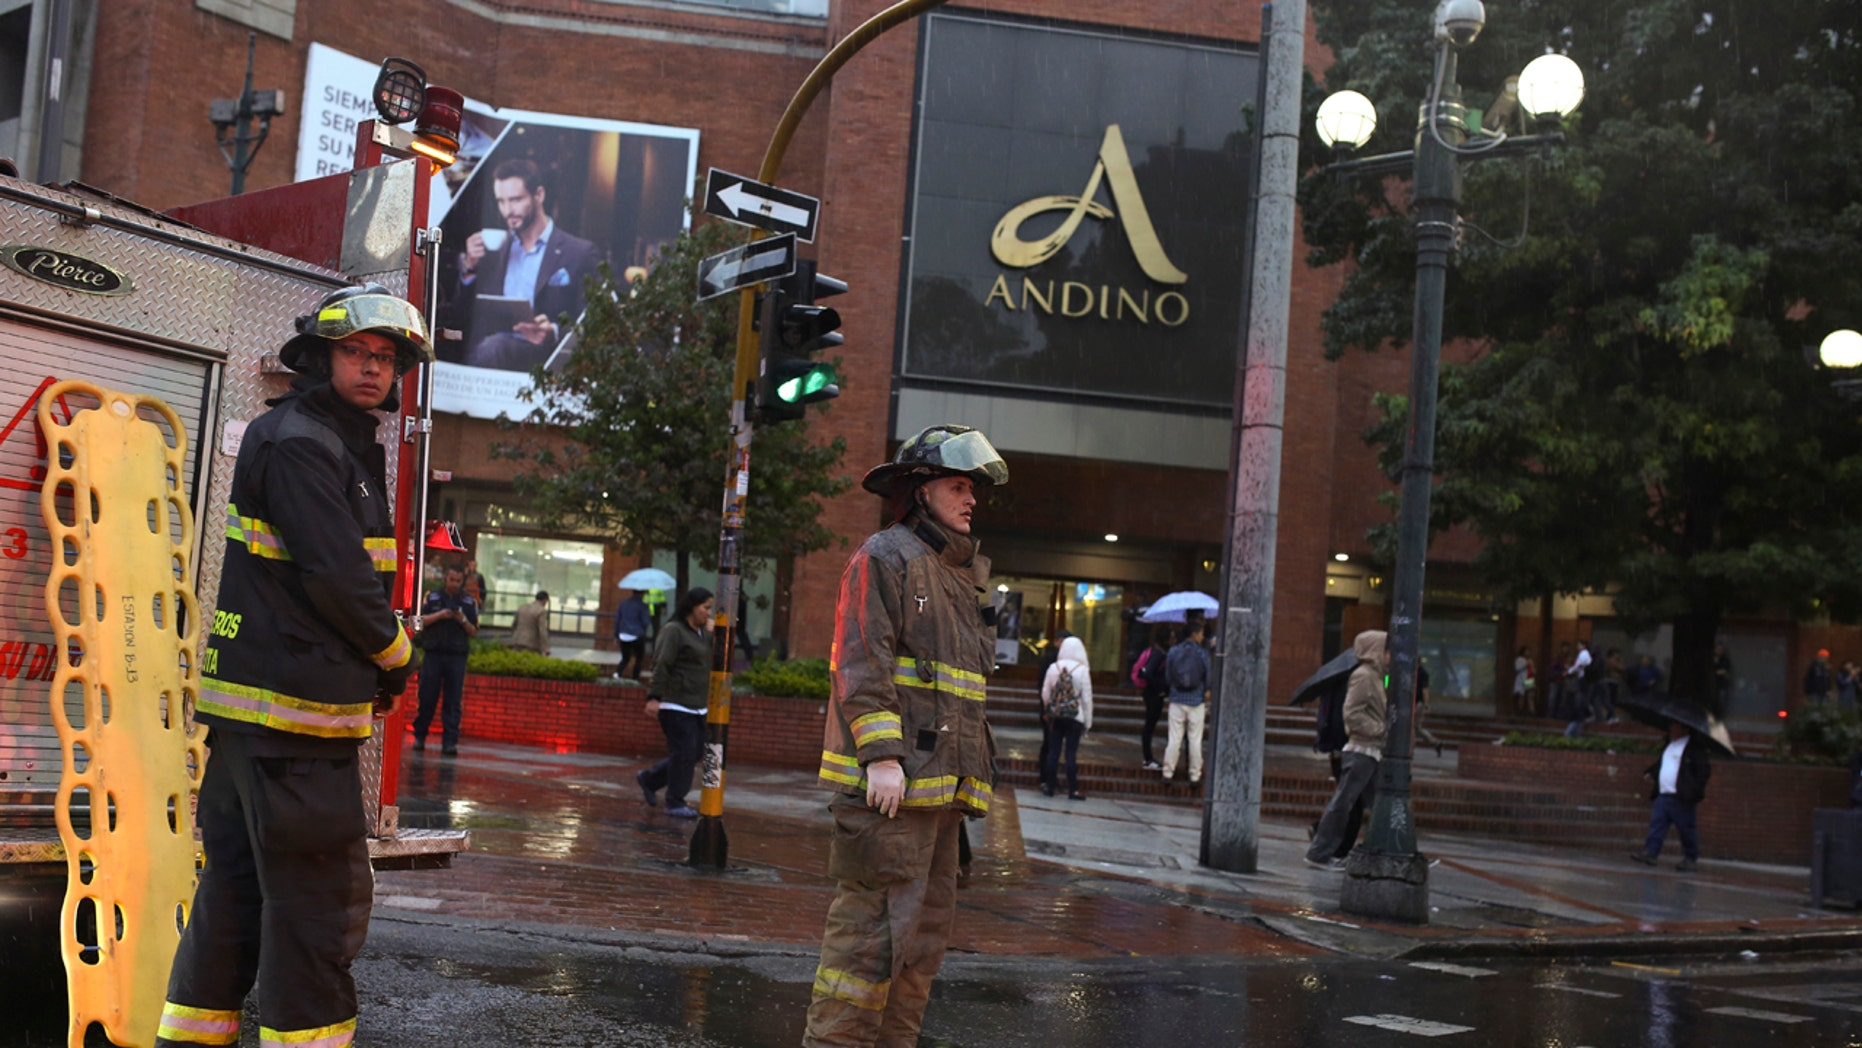 Firefighters stand outside the Centro Andino shopping center in Bogota, Colombia, Saturday, June 17, 2017.